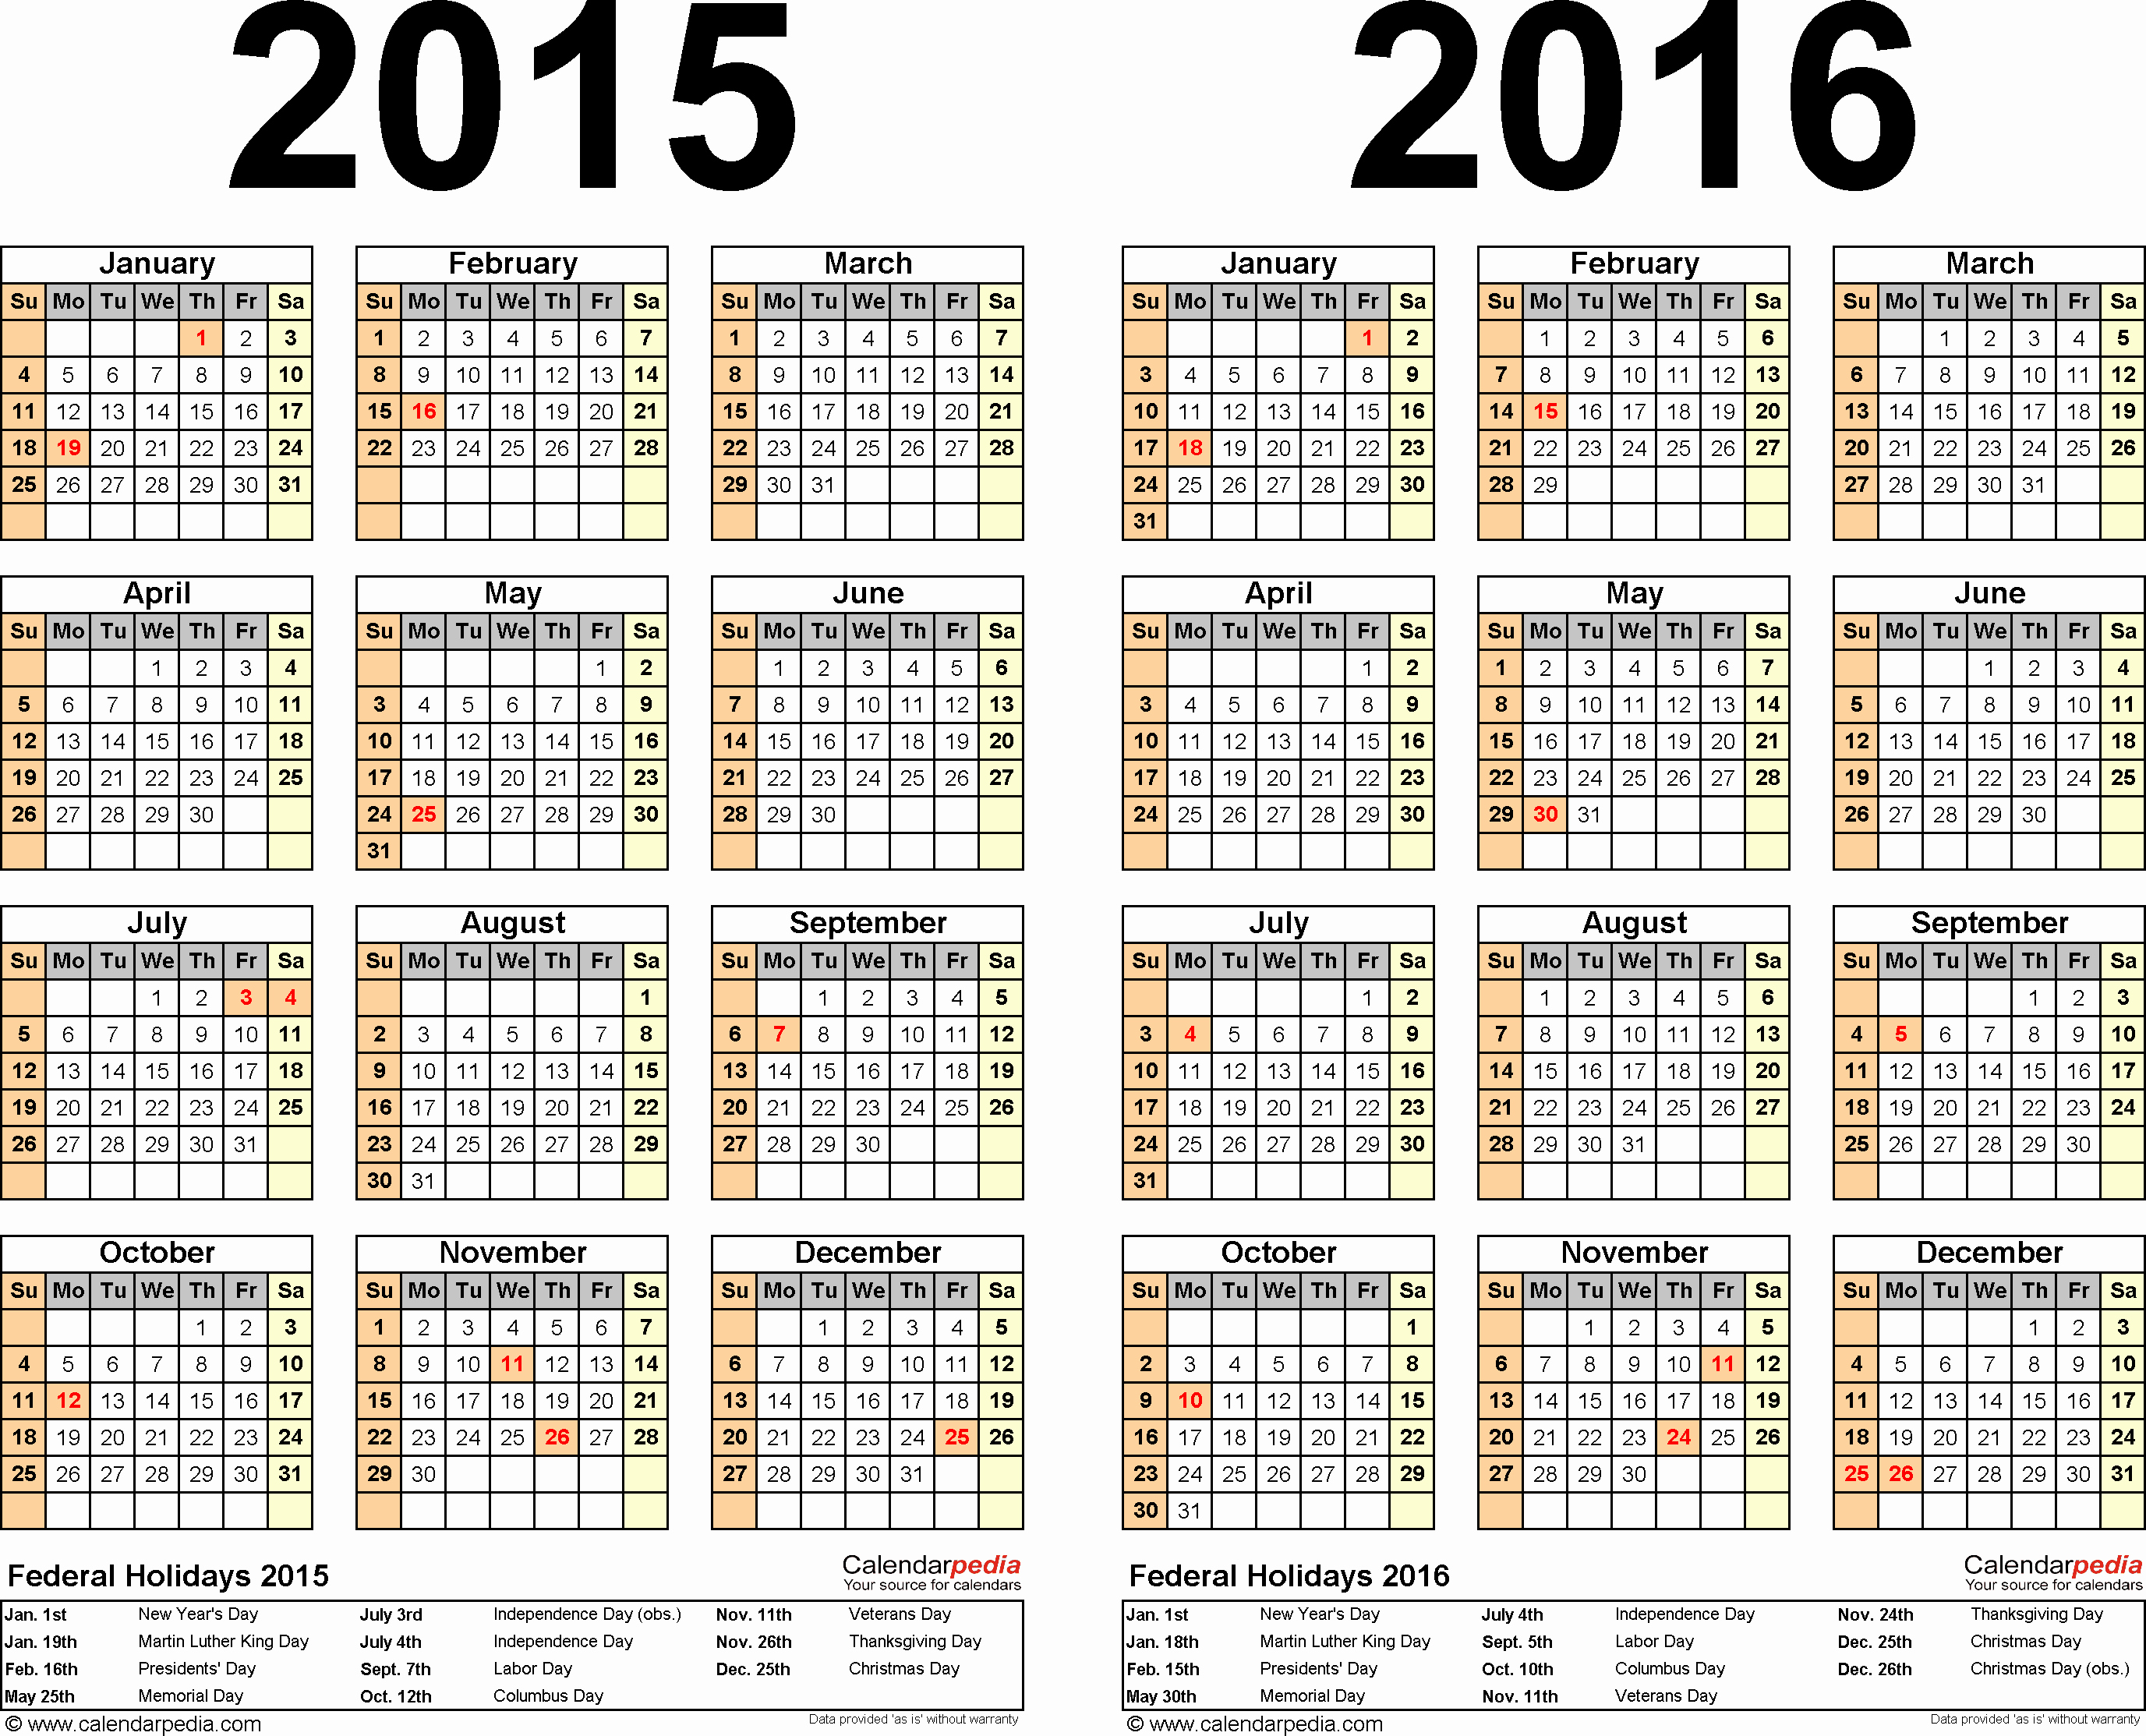 Fiscal Year Calendar 2016 Template Best Of 2015 2016 Calendar Free Printable Two Year Excel Calendars